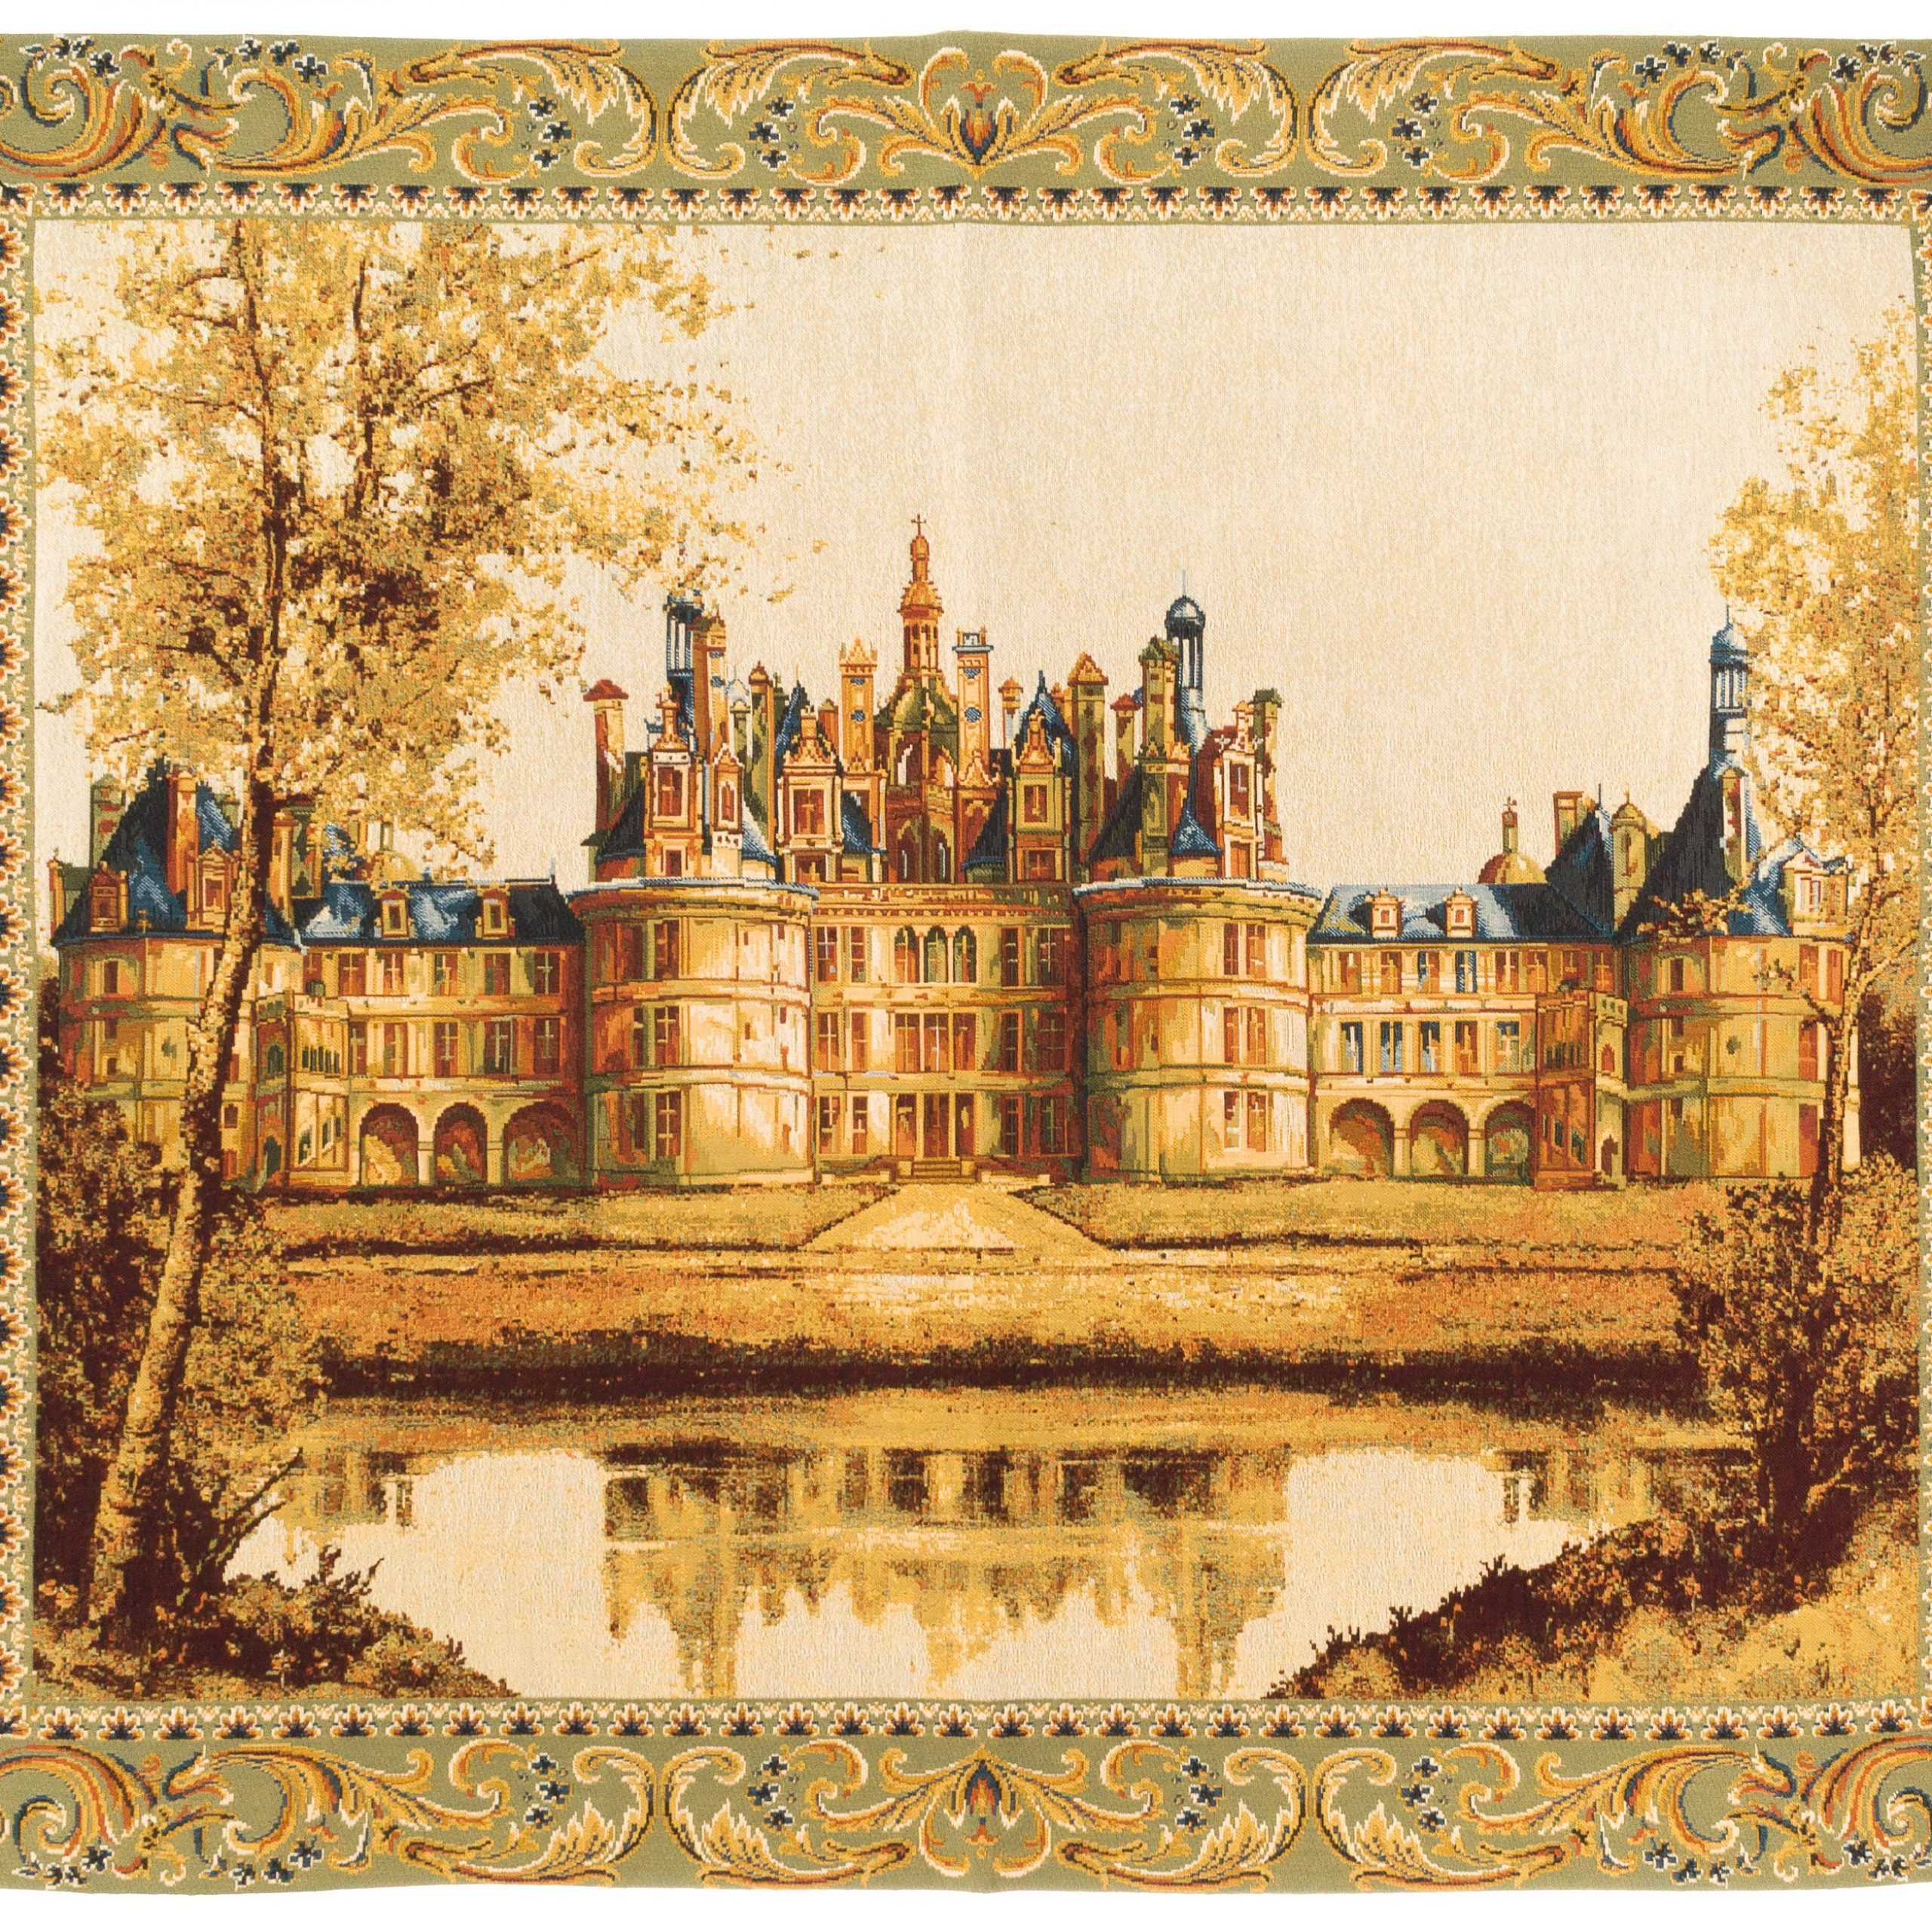 Tapestry Wall Hanging Chambord Castle – Frech Castle Pertaining To Most Recent Chambord Castle I European Wall Hangings (View 7 of 20)